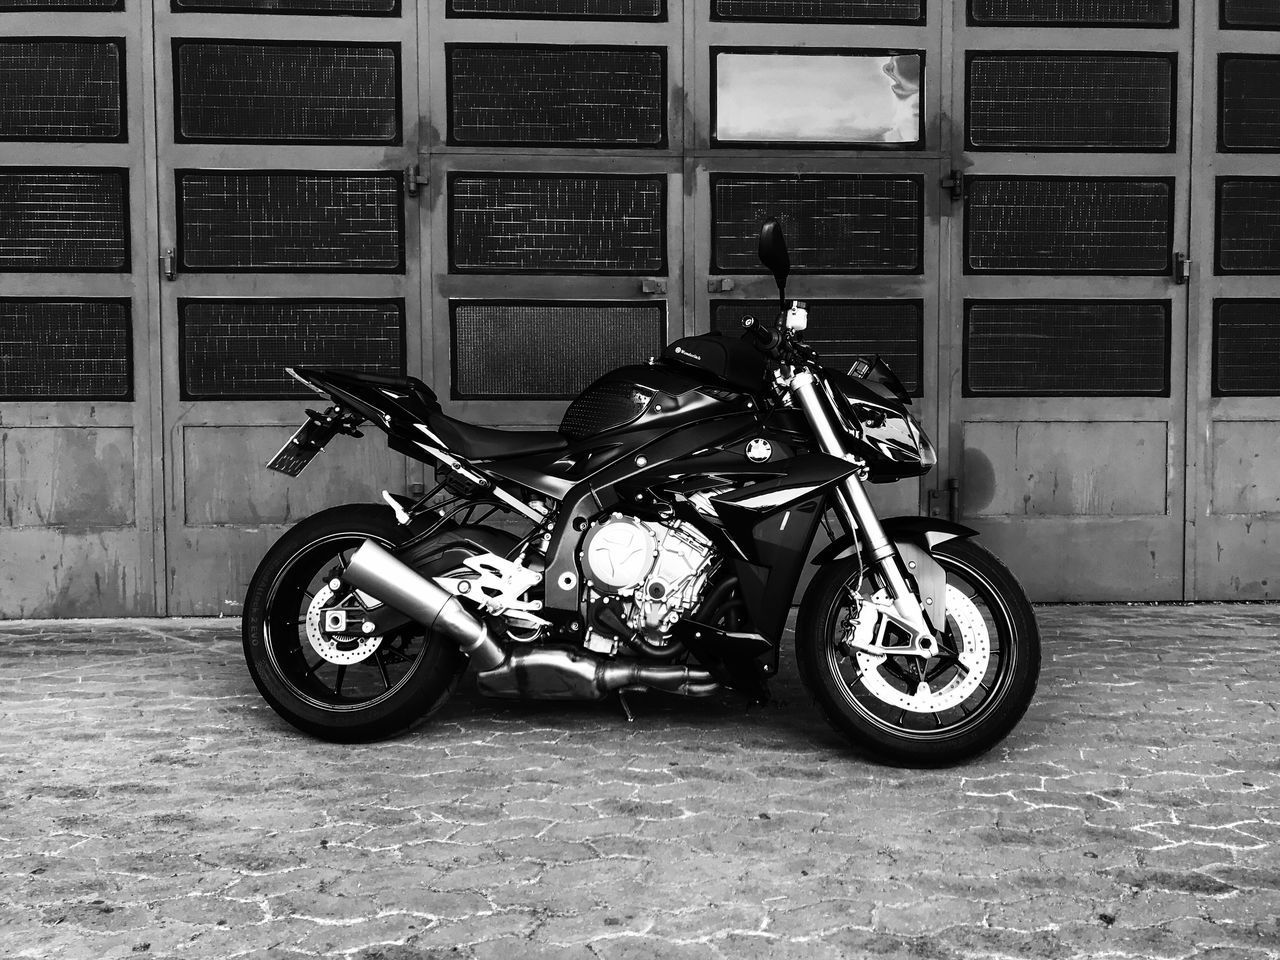 transportation, mode of transportation, land vehicle, motorcycle, architecture, building exterior, built structure, stationary, city, street, day, building, no people, outdoors, parking, window, brick, full length, scooter, luxury